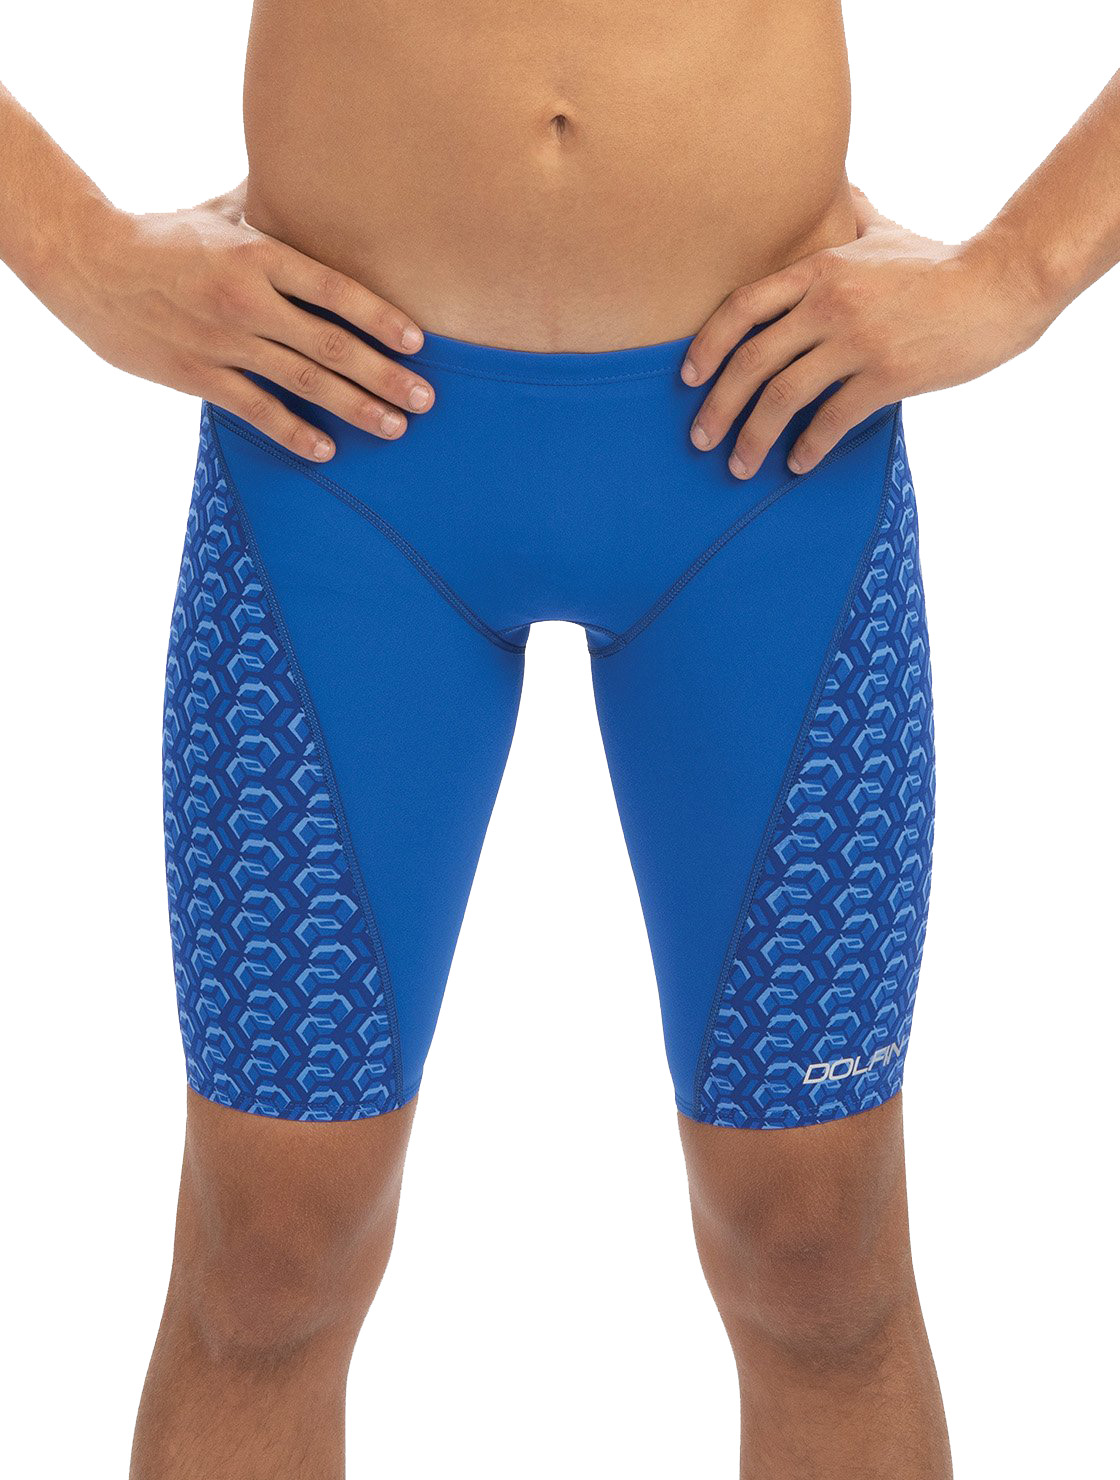 Dolfin Firststrike Jammer | swim_clothes